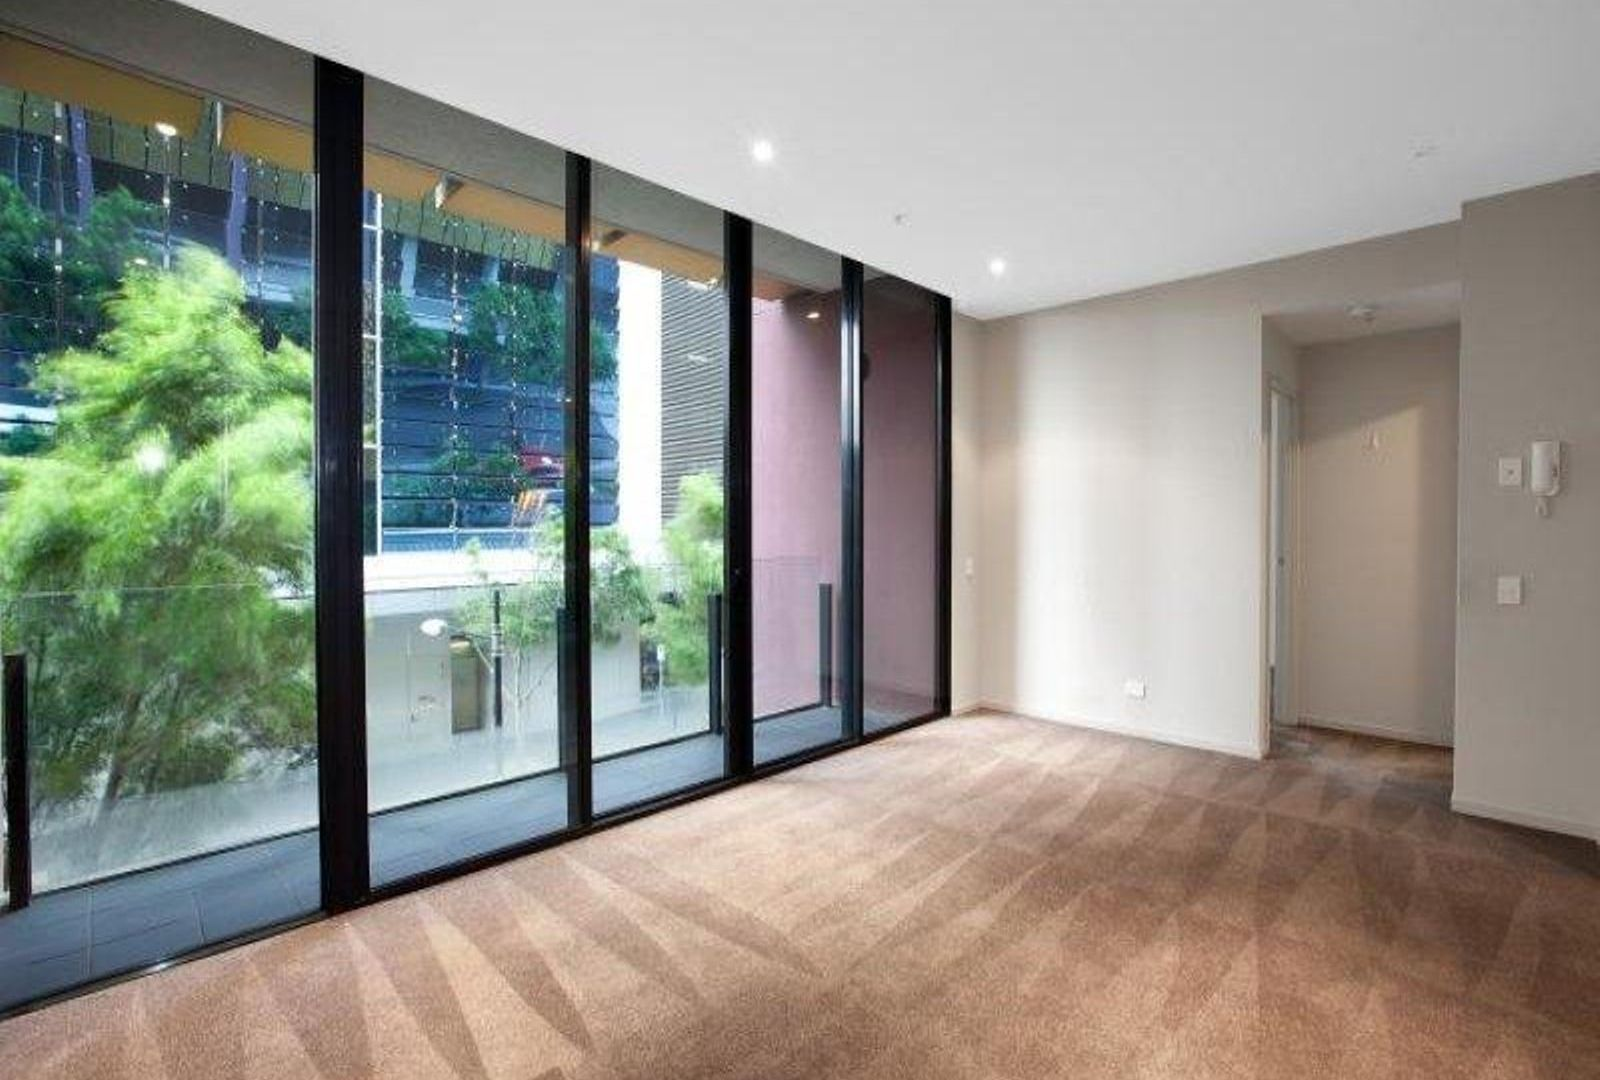 116/39 Caravel Lane, Docklands VIC 3008, Image 1